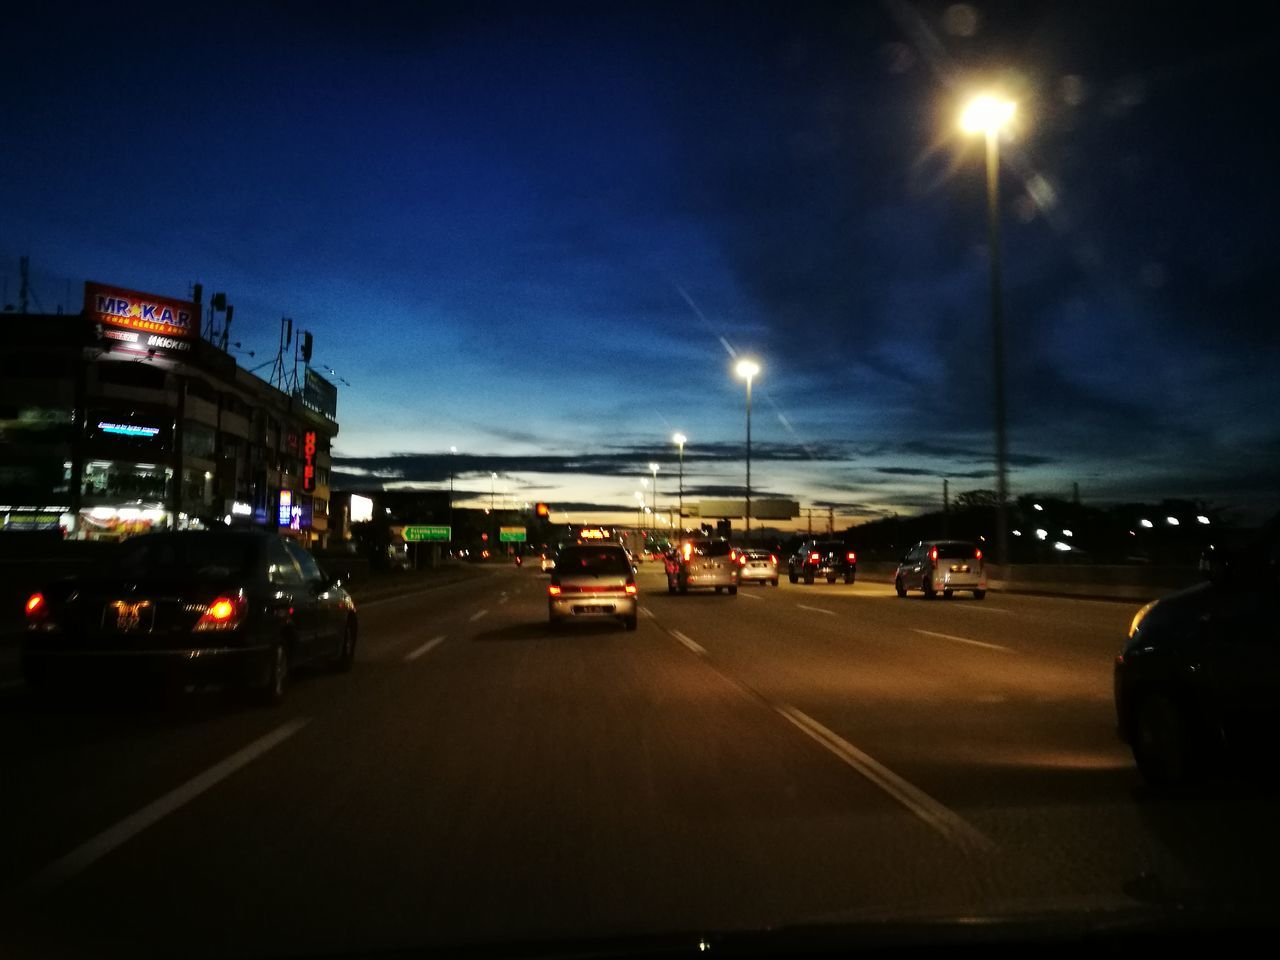 Nofilter Architecture Mode Of Transport Land Vehicle Road Building Exterior Transportation Traffic Dusk Outdoors Gas Station No People Night Illuminated City Sky Car